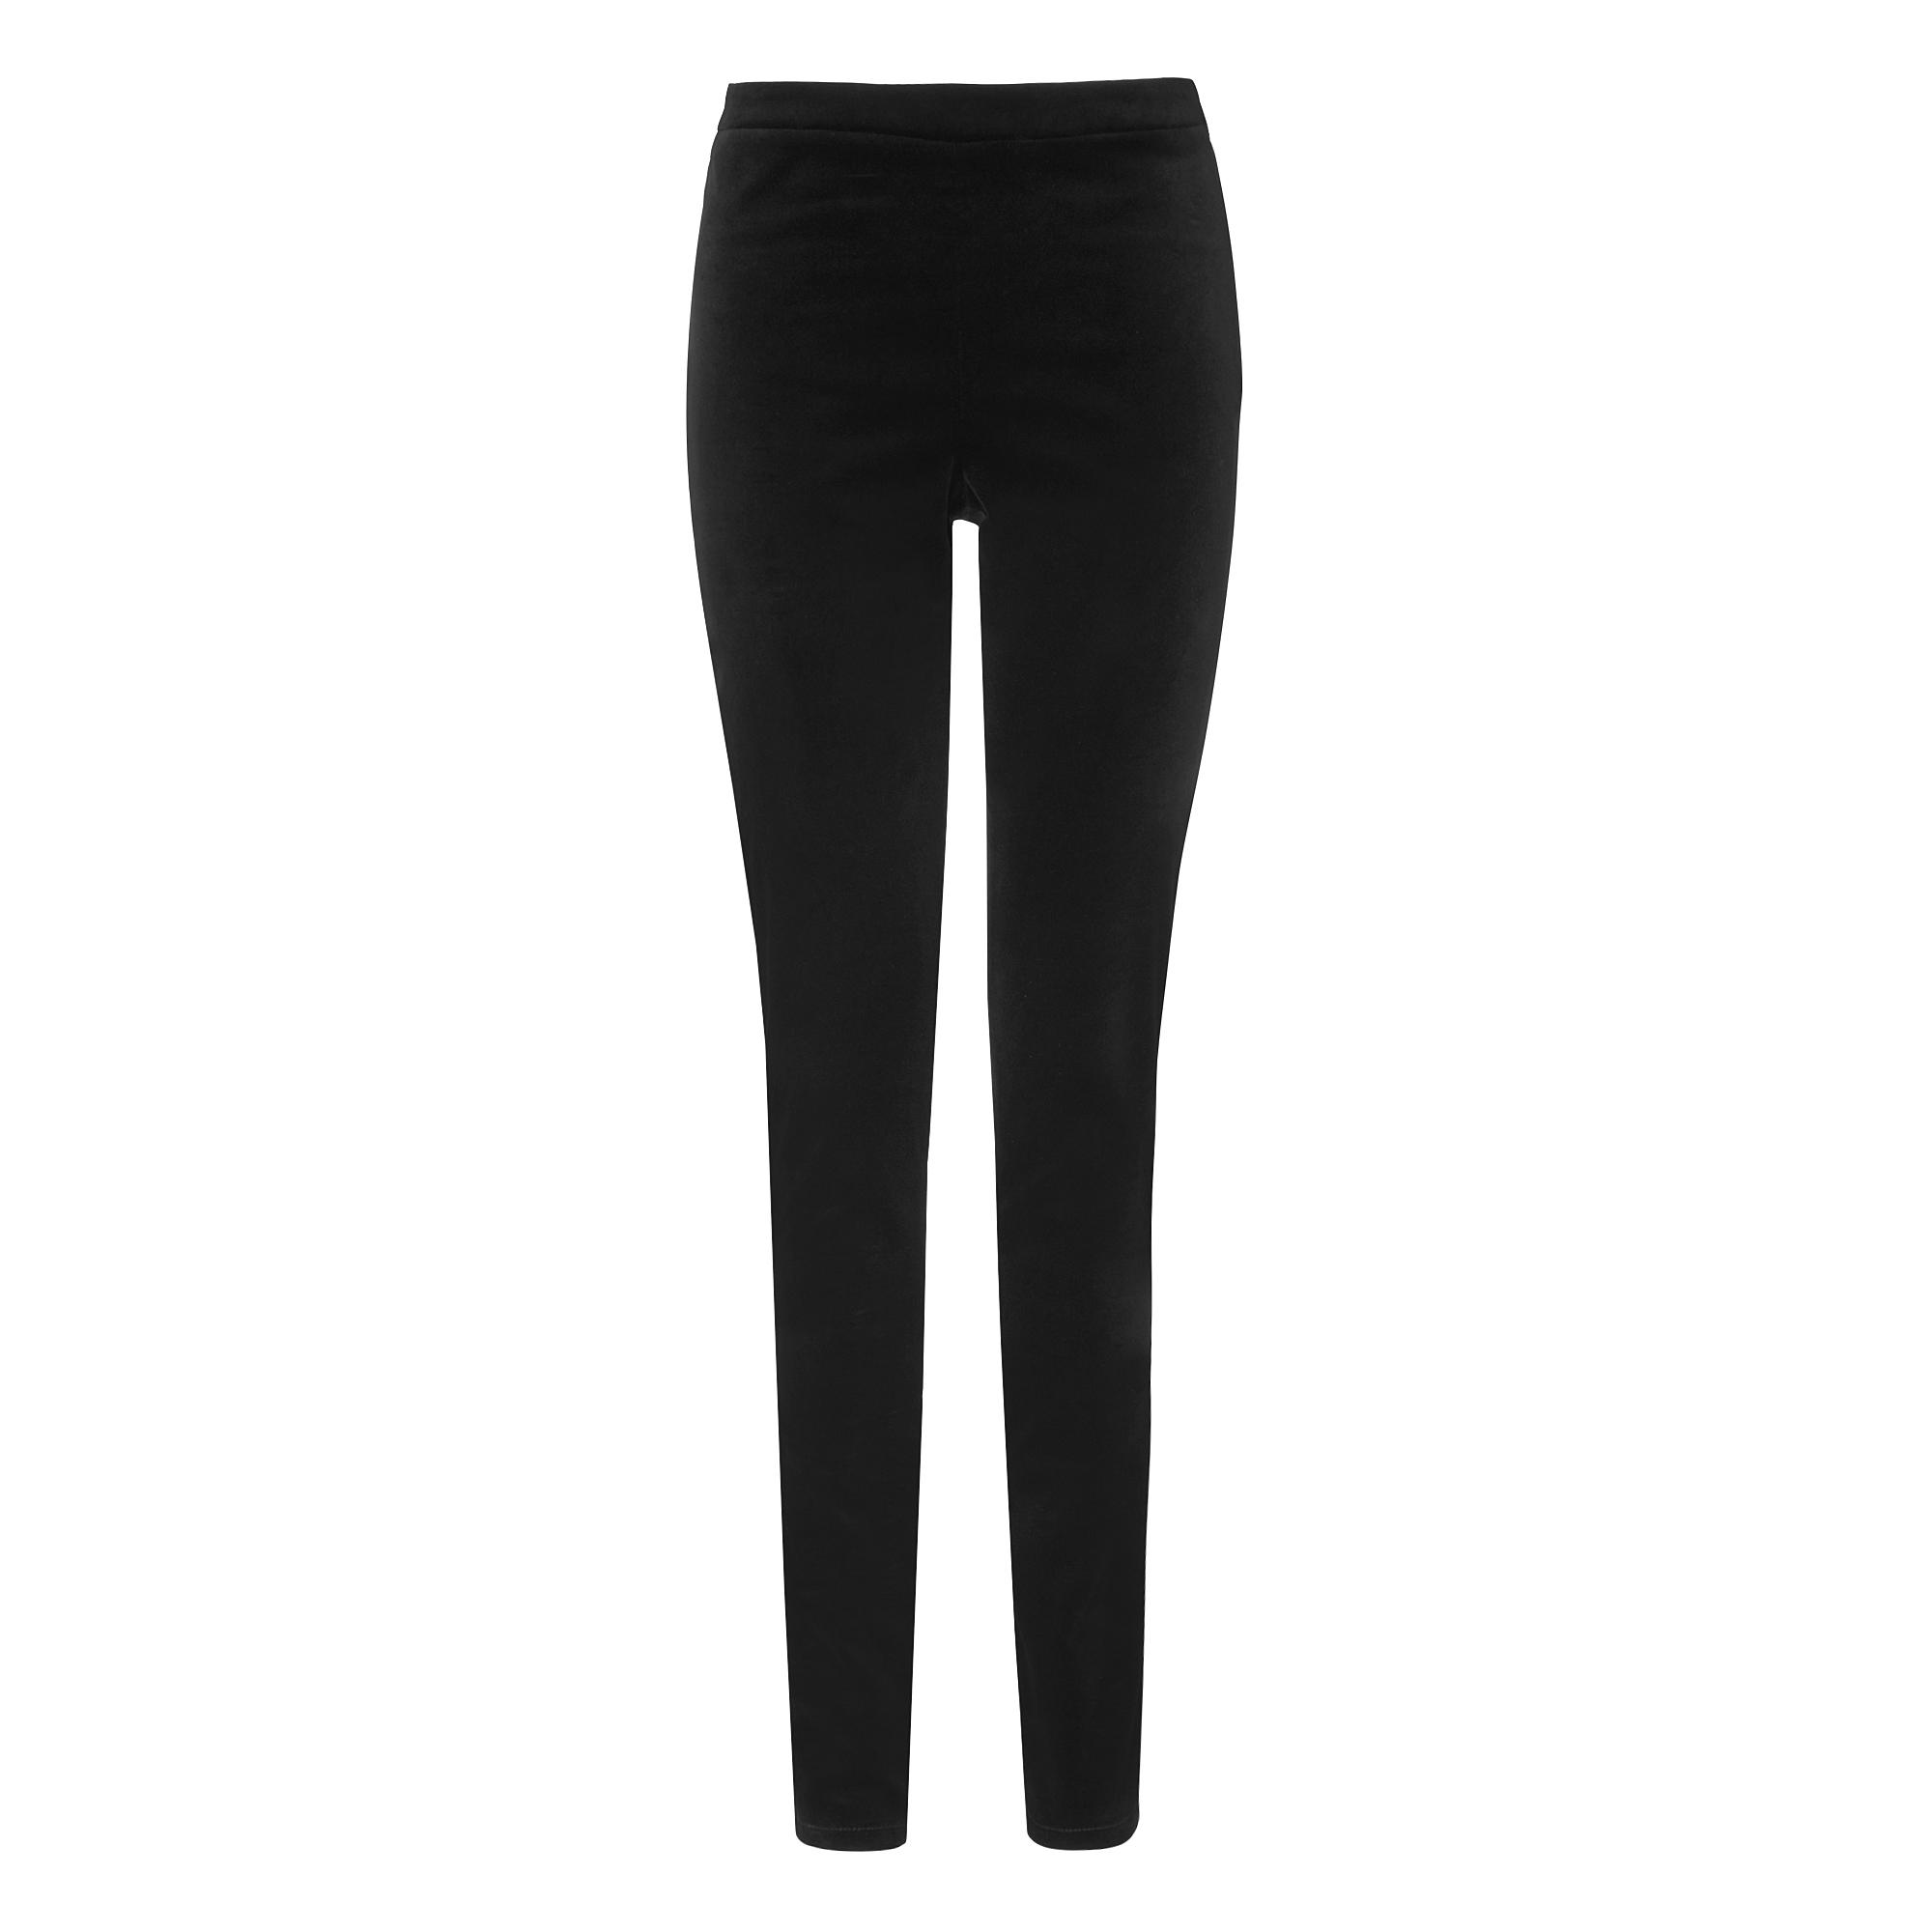 L.K.Bennett Velvet Stretch Trouser